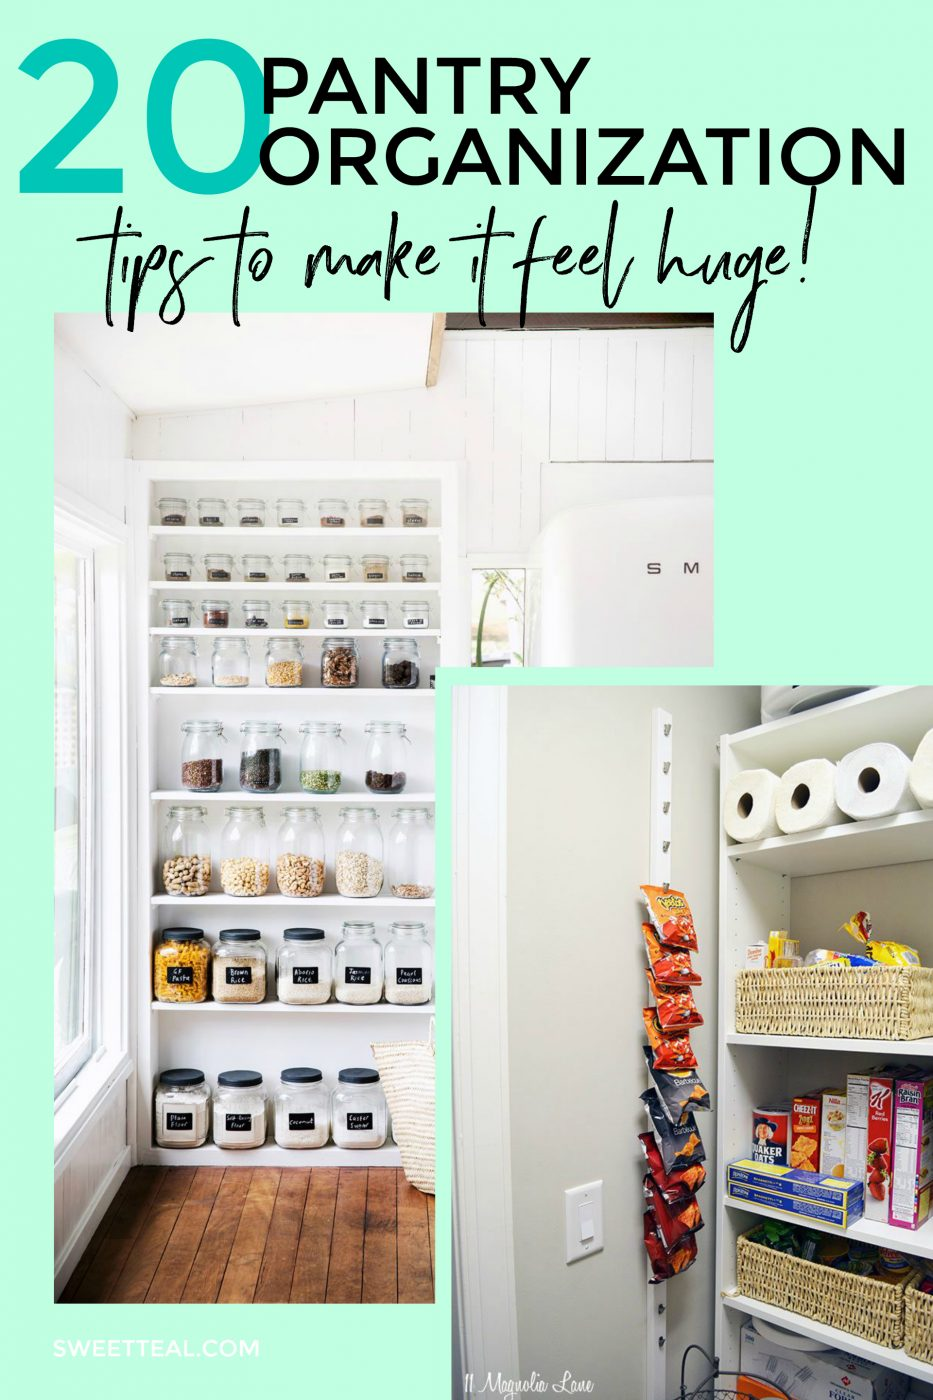 20 Pantry Organization Tips